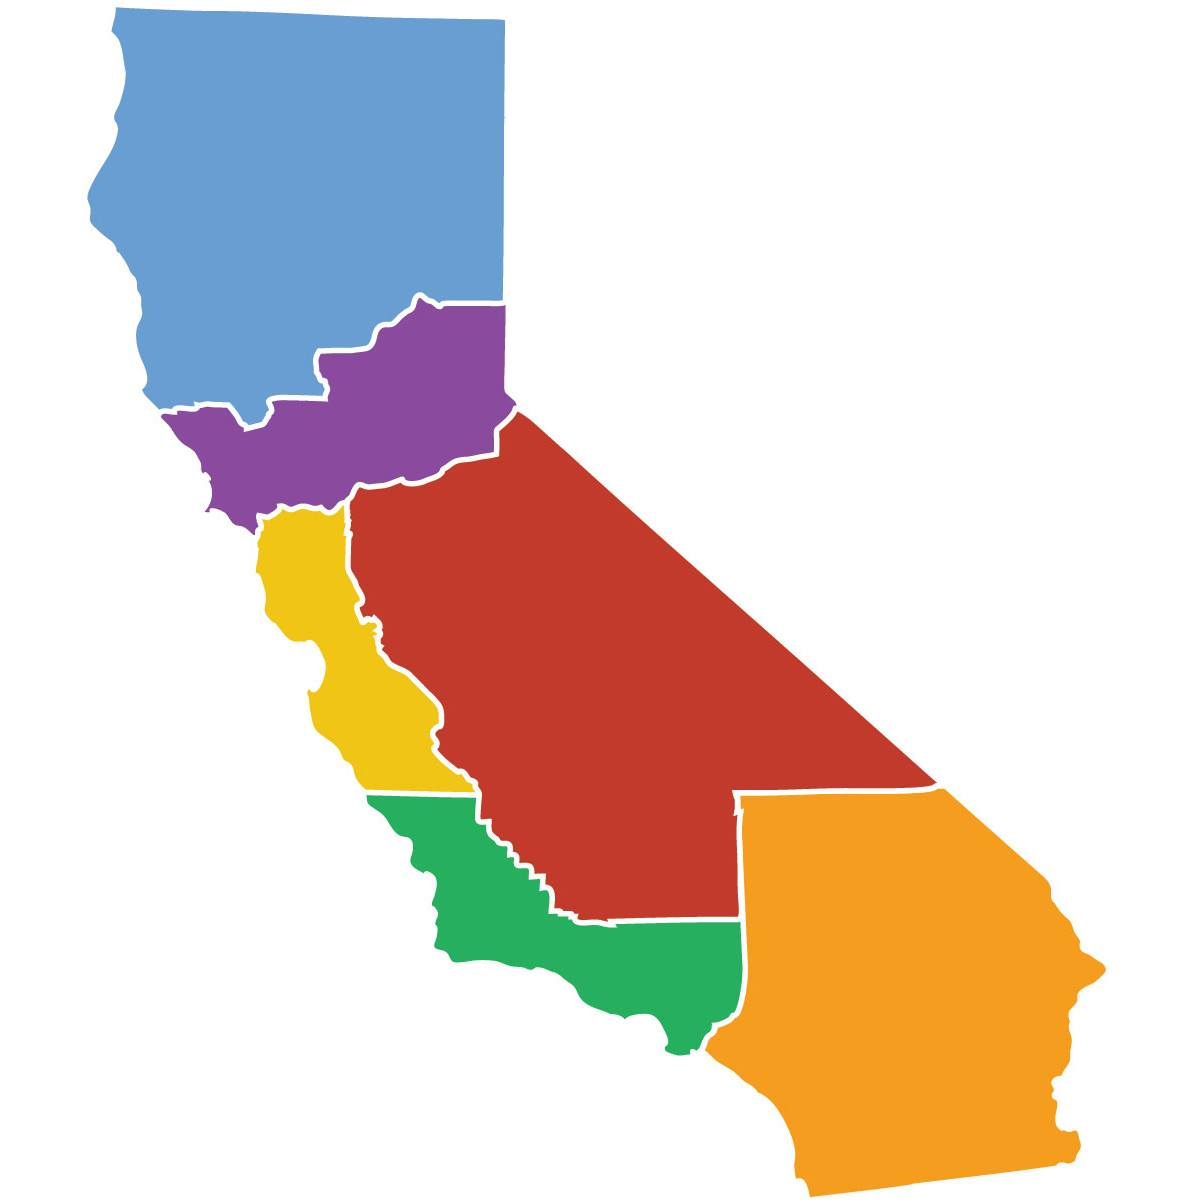 Six Californias, An Initiative to Divide California Into Six New States